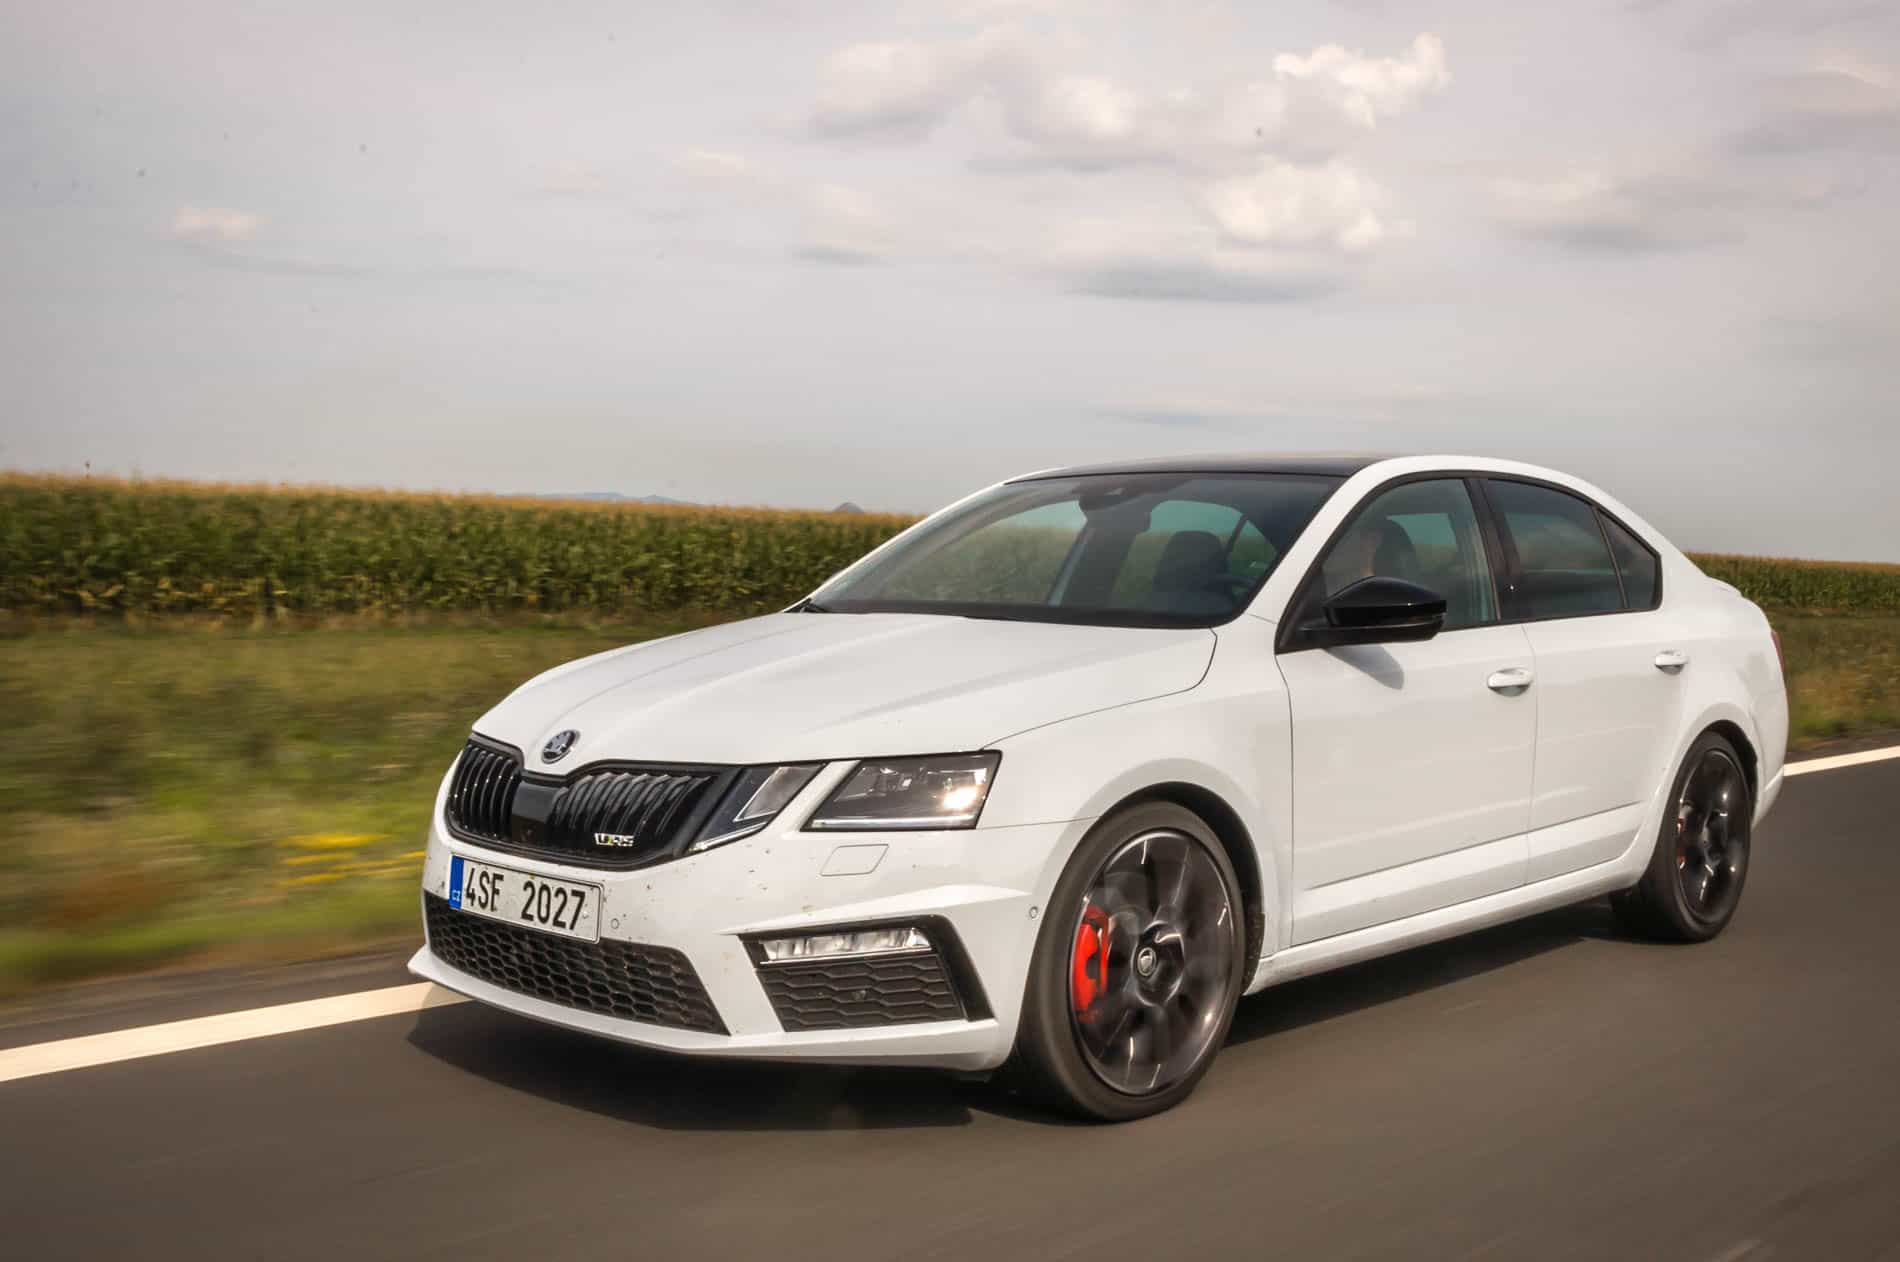 Leon vs Octavia RS vs Golf GTI-150